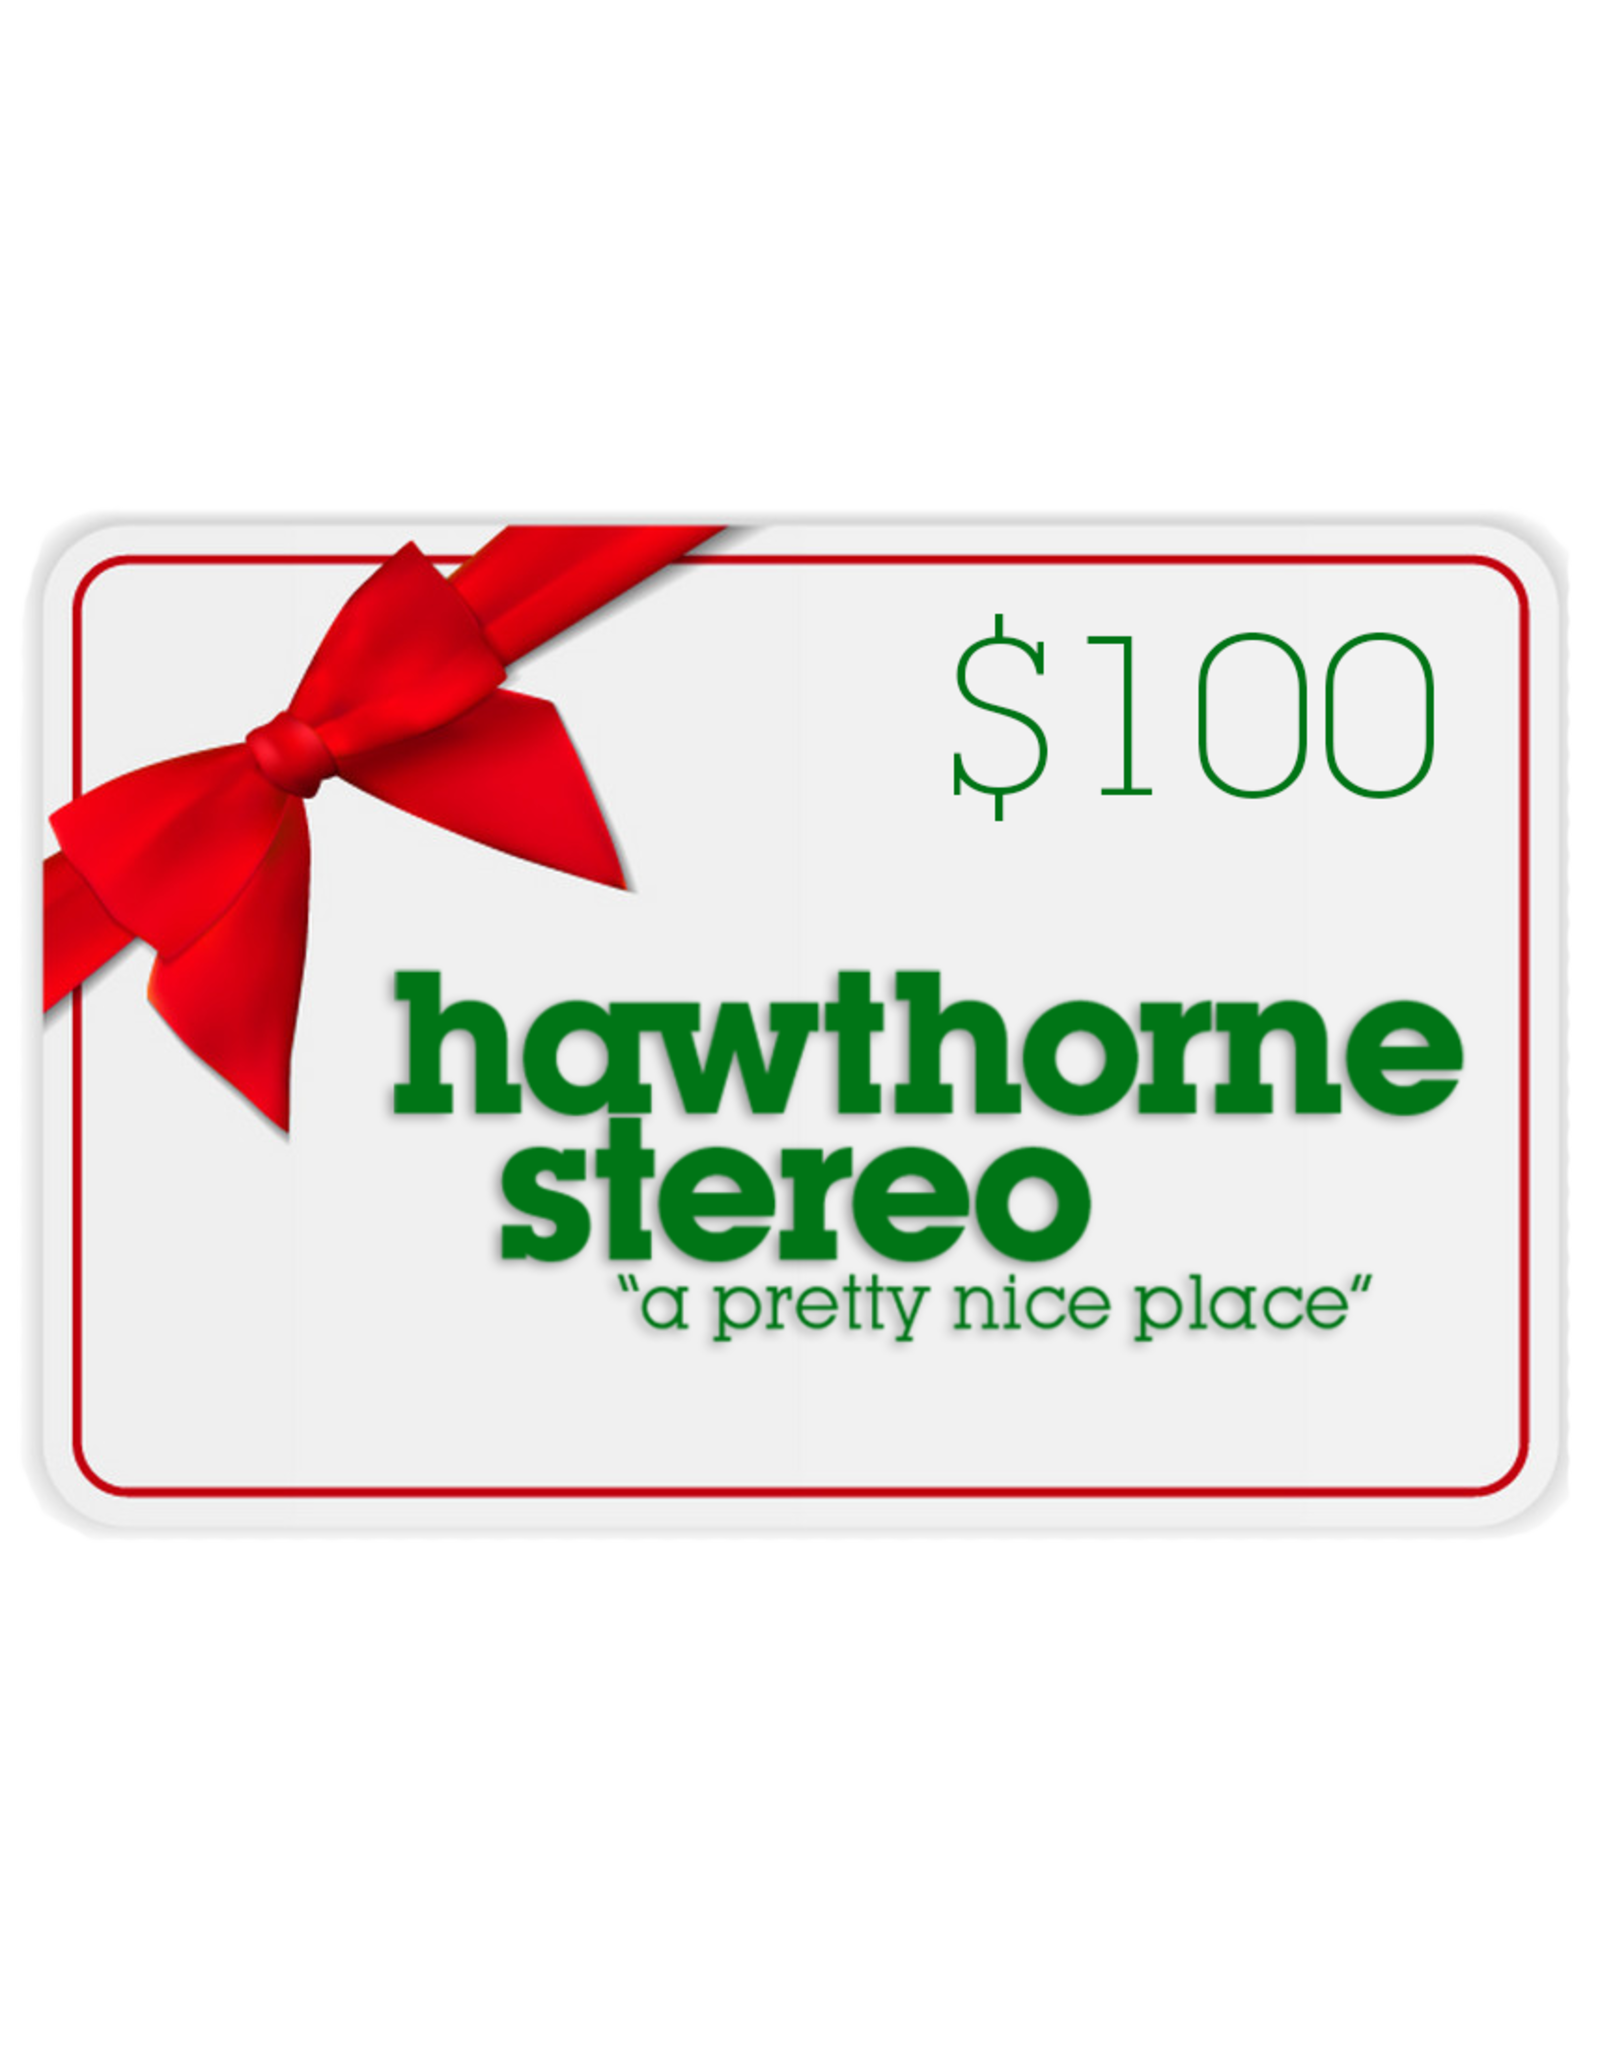 Hawthorne Stereo Gift Card for In-Store Use $100